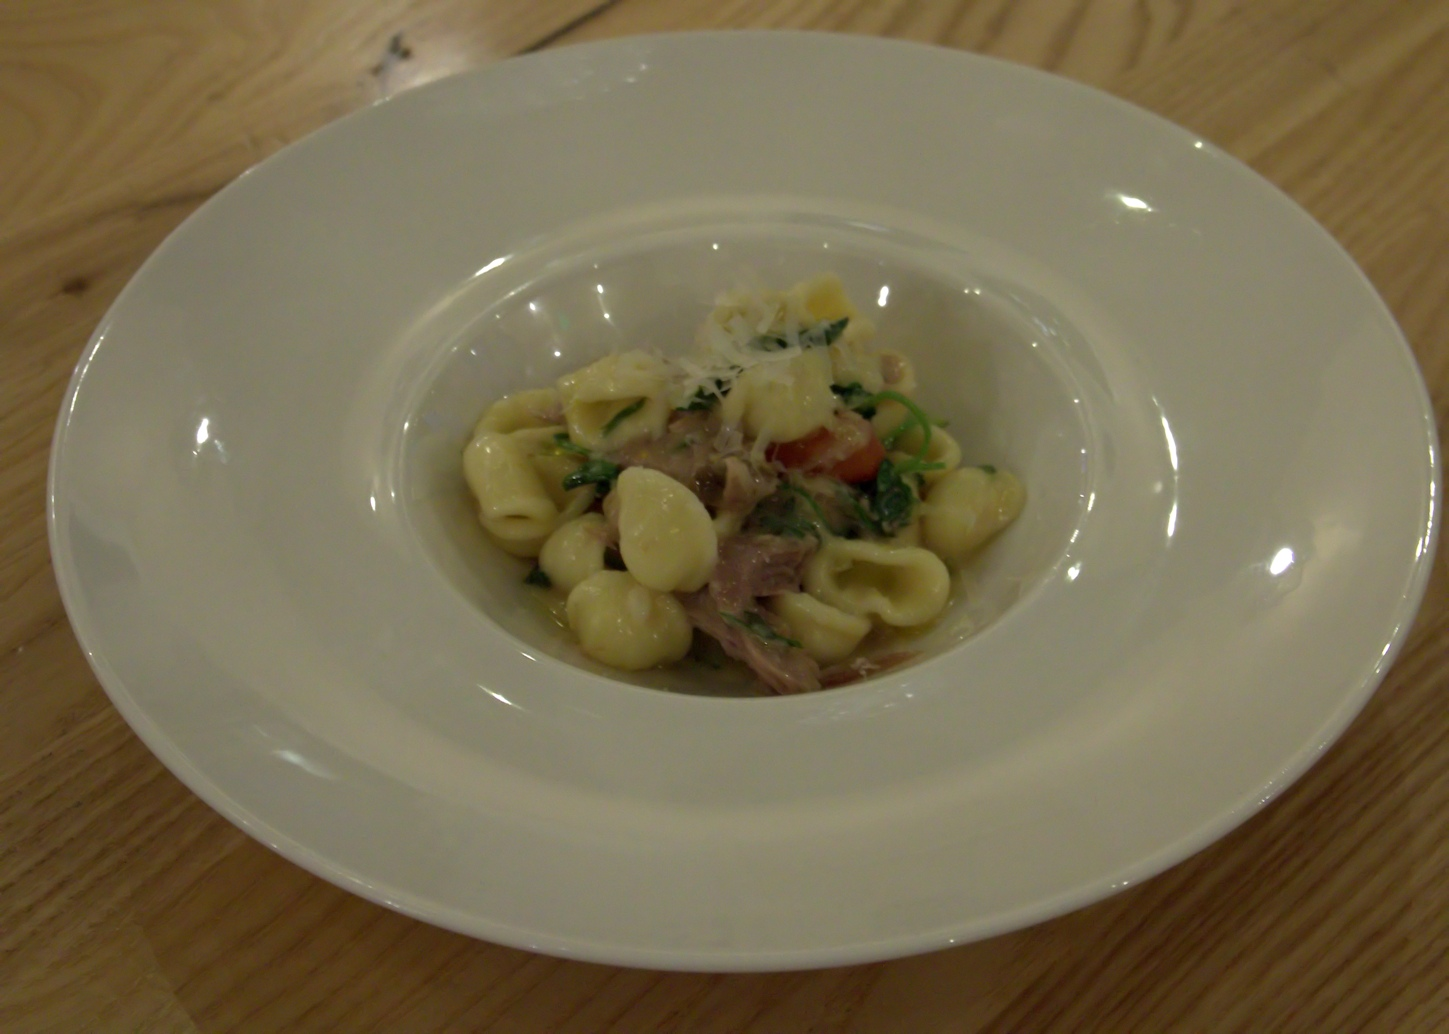 Orecchiette with duck confit, cherry tomatoes, zucchini, peas and Parmesan cheese